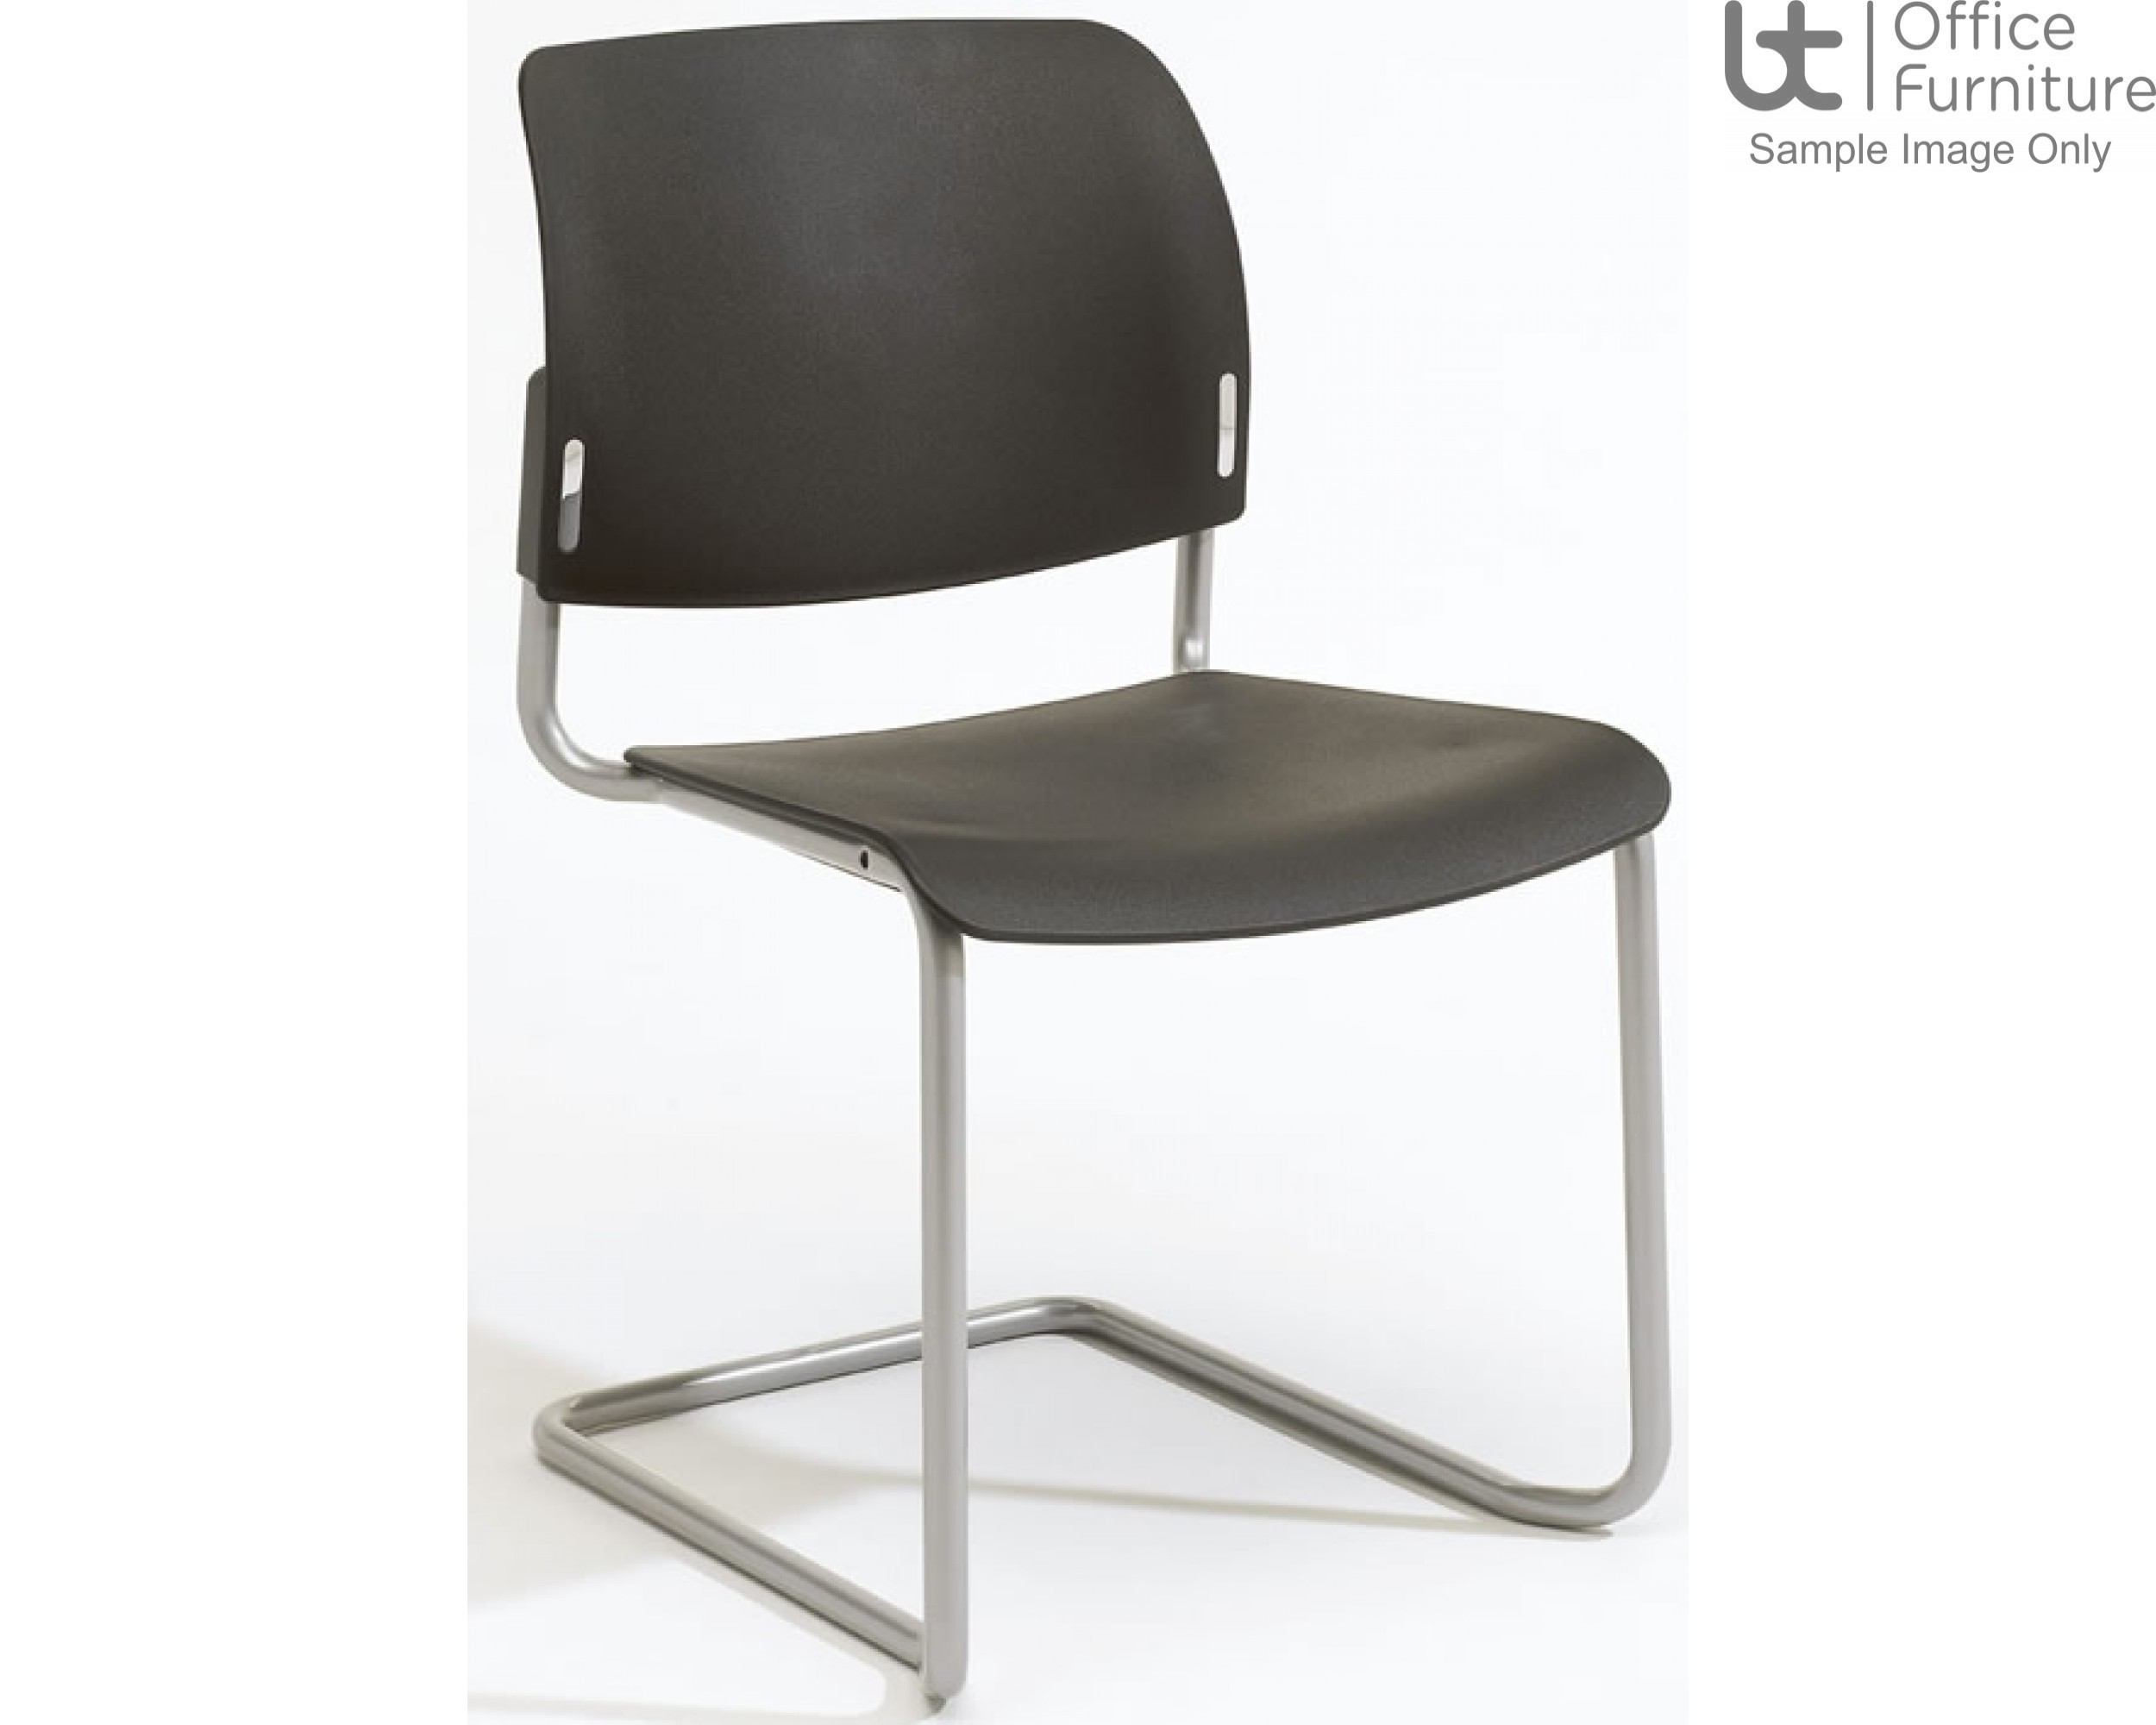 Verco Visitor / Conference Seating - Add Cantilever Plastic Stacking Chair